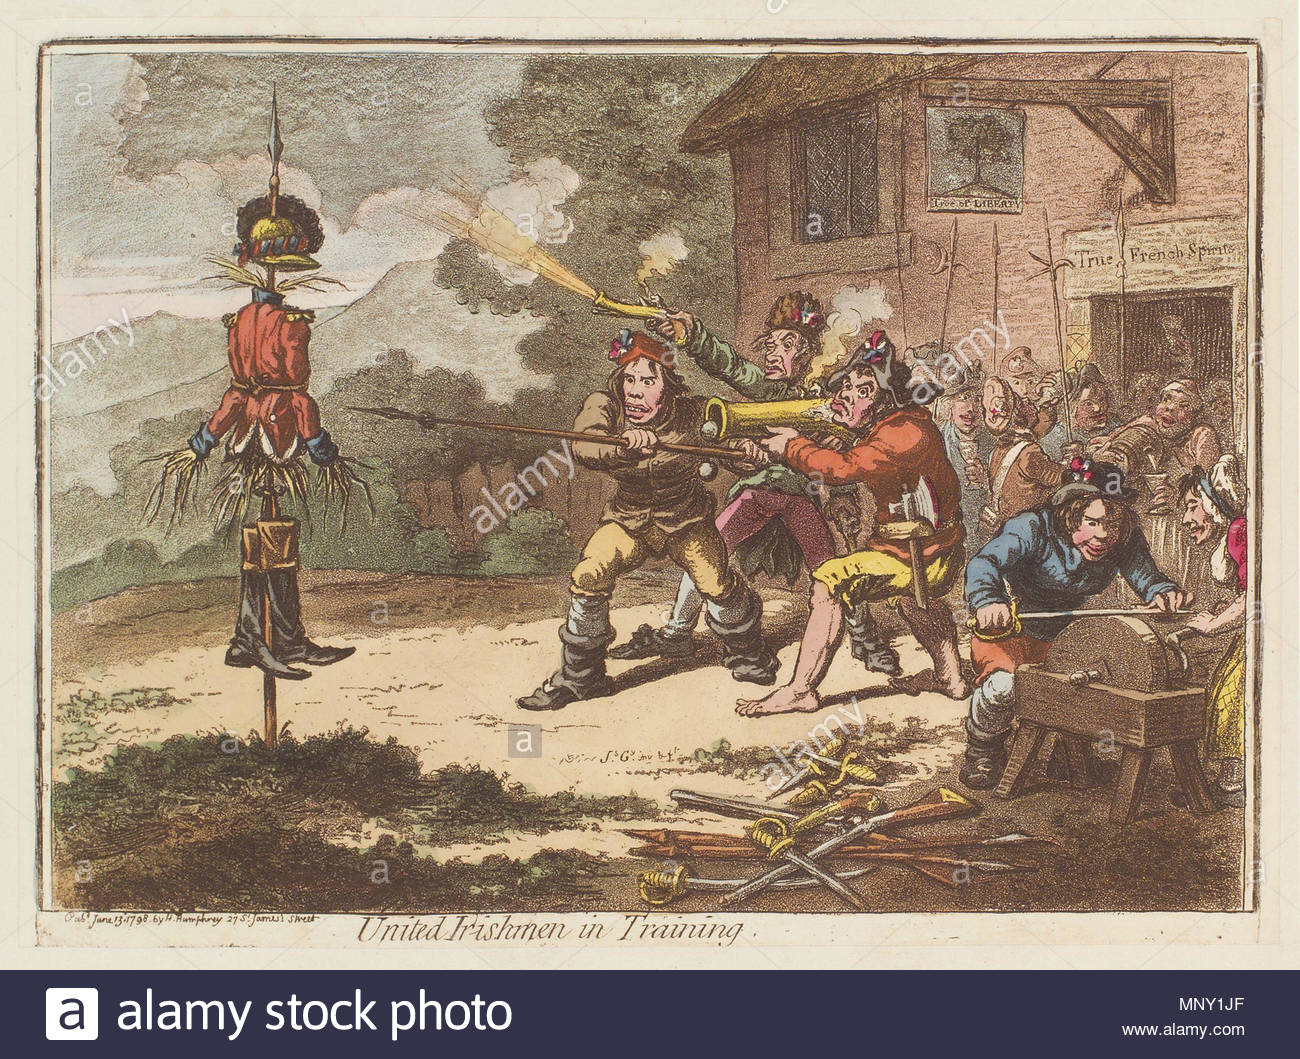 united irishmen Inspired by the french revolution, and with great admiration for the new democracy of the united states, the united irishmen were led by theobald wolfe tone, thomas russell, henry joy mccracken and william drennan.